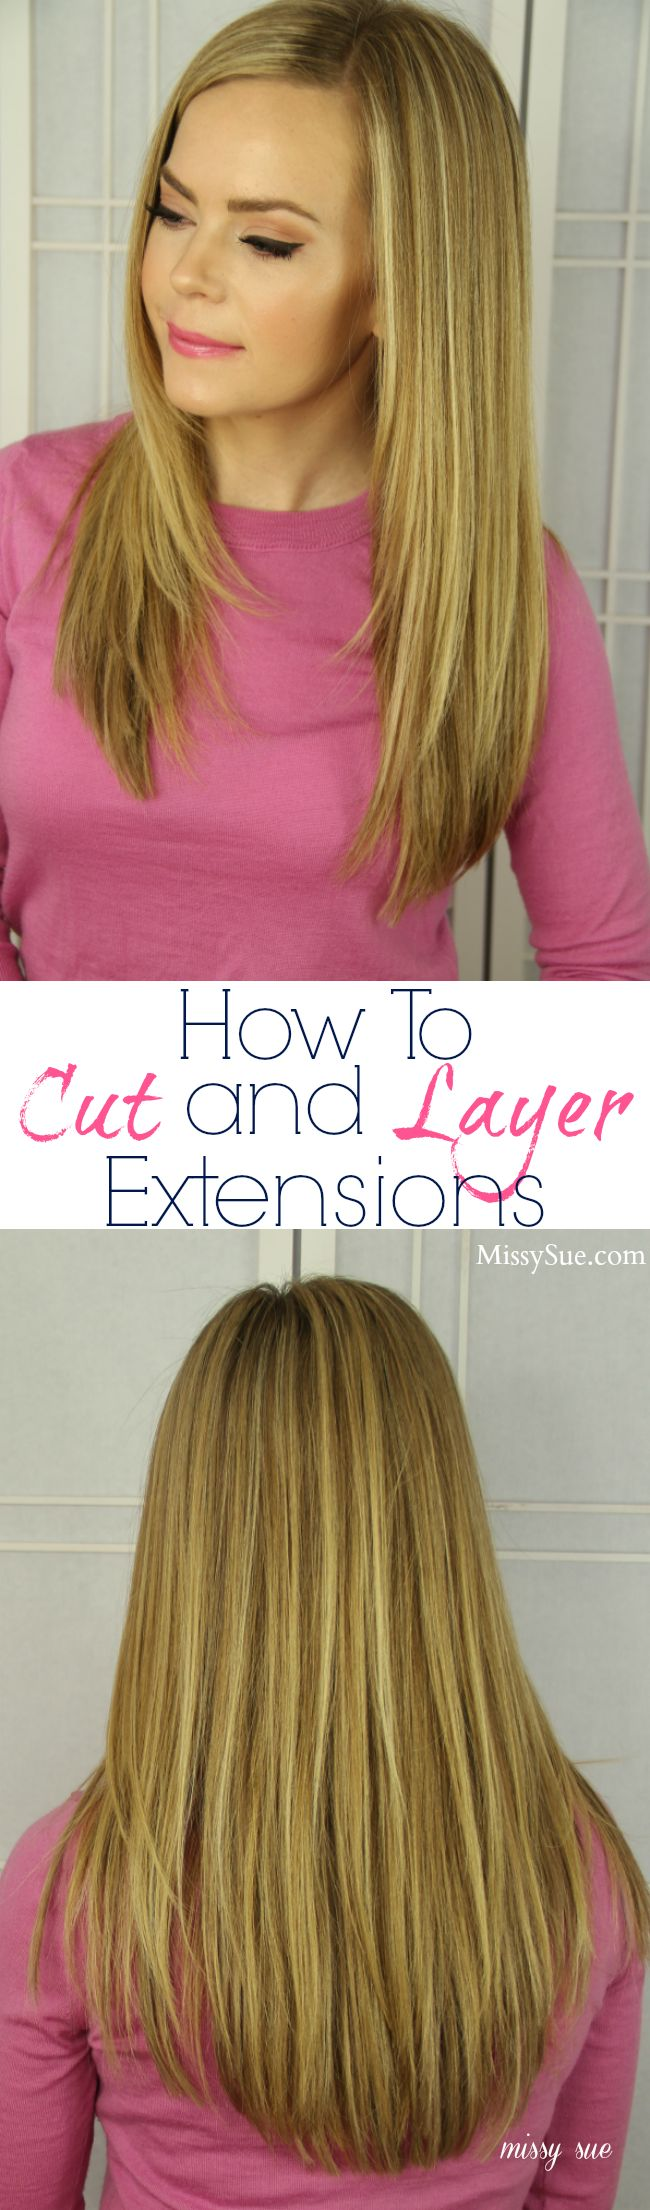 hair style layer how to cut and layer hair extensions s world 2822 | b123edd6277401b45ccf02f1be424ce5